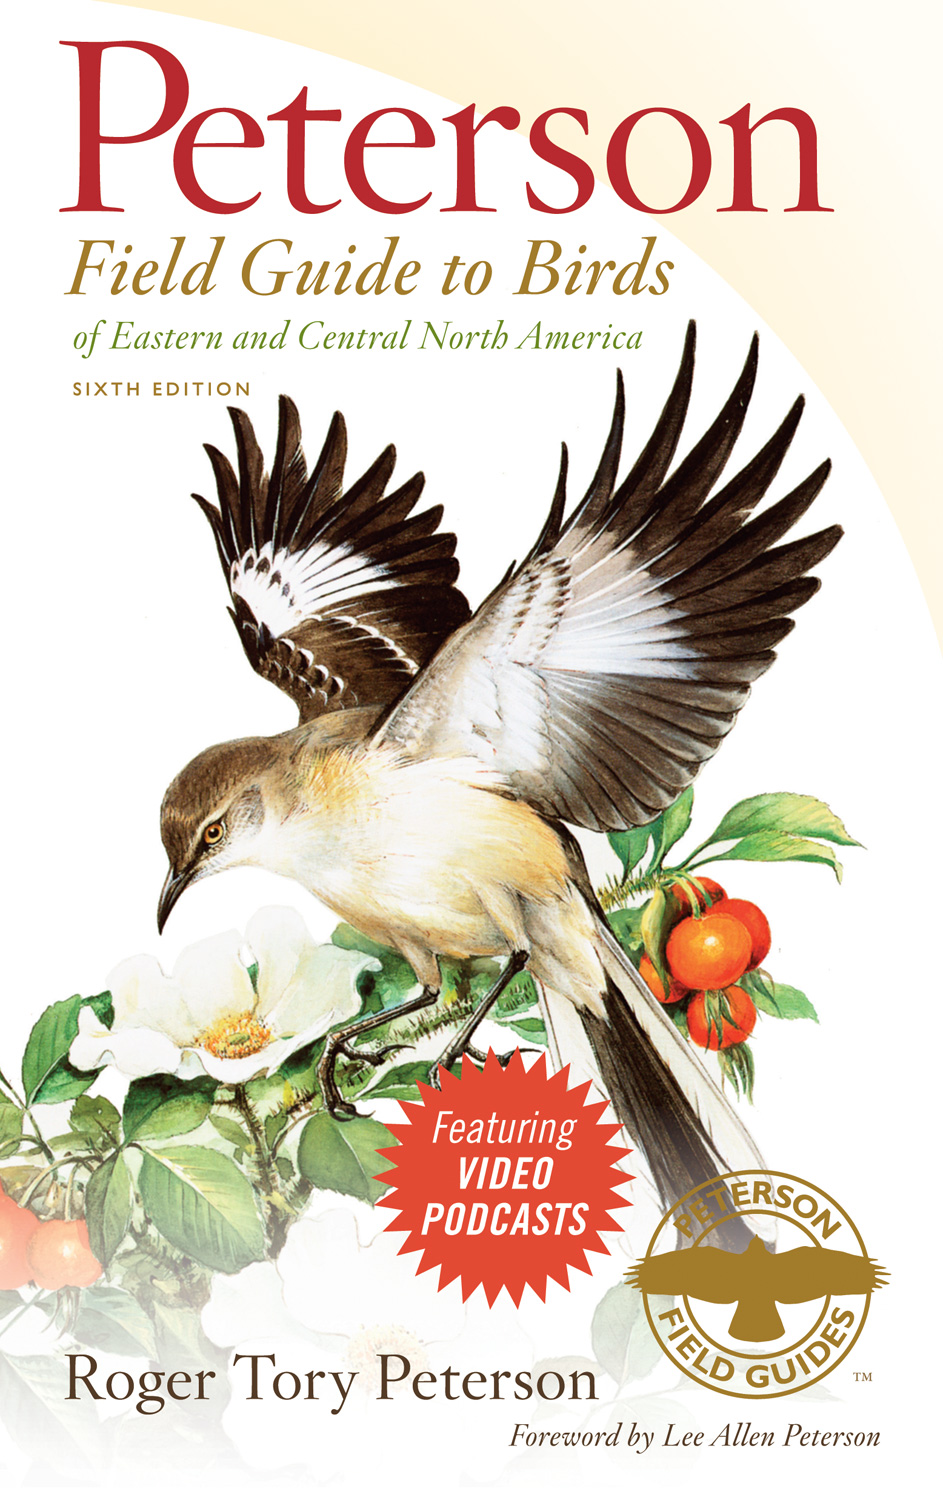 Peterson Field Guide to Birds of Eastern and Central North America, Sixth Edition-9780547152462